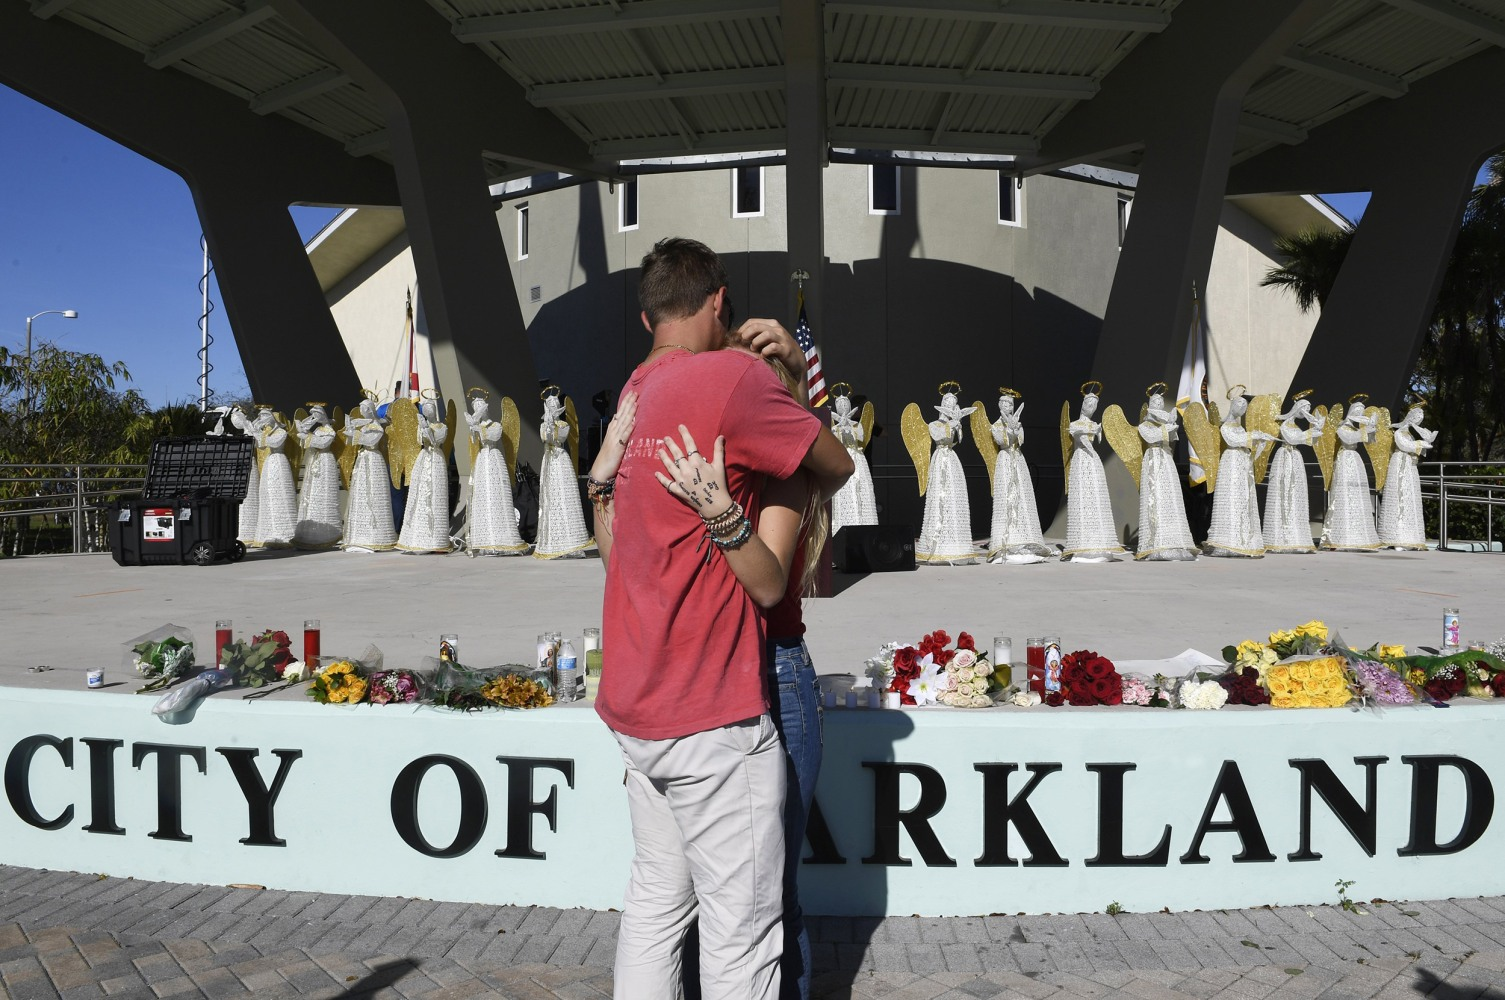 Zack King, left, comforts friend Mychal Bradley in front of 17 angels representing those who died at the Marjory Stoneman Douglas High School shooting in Parkland, Florida. Taimy Alvarez / AP